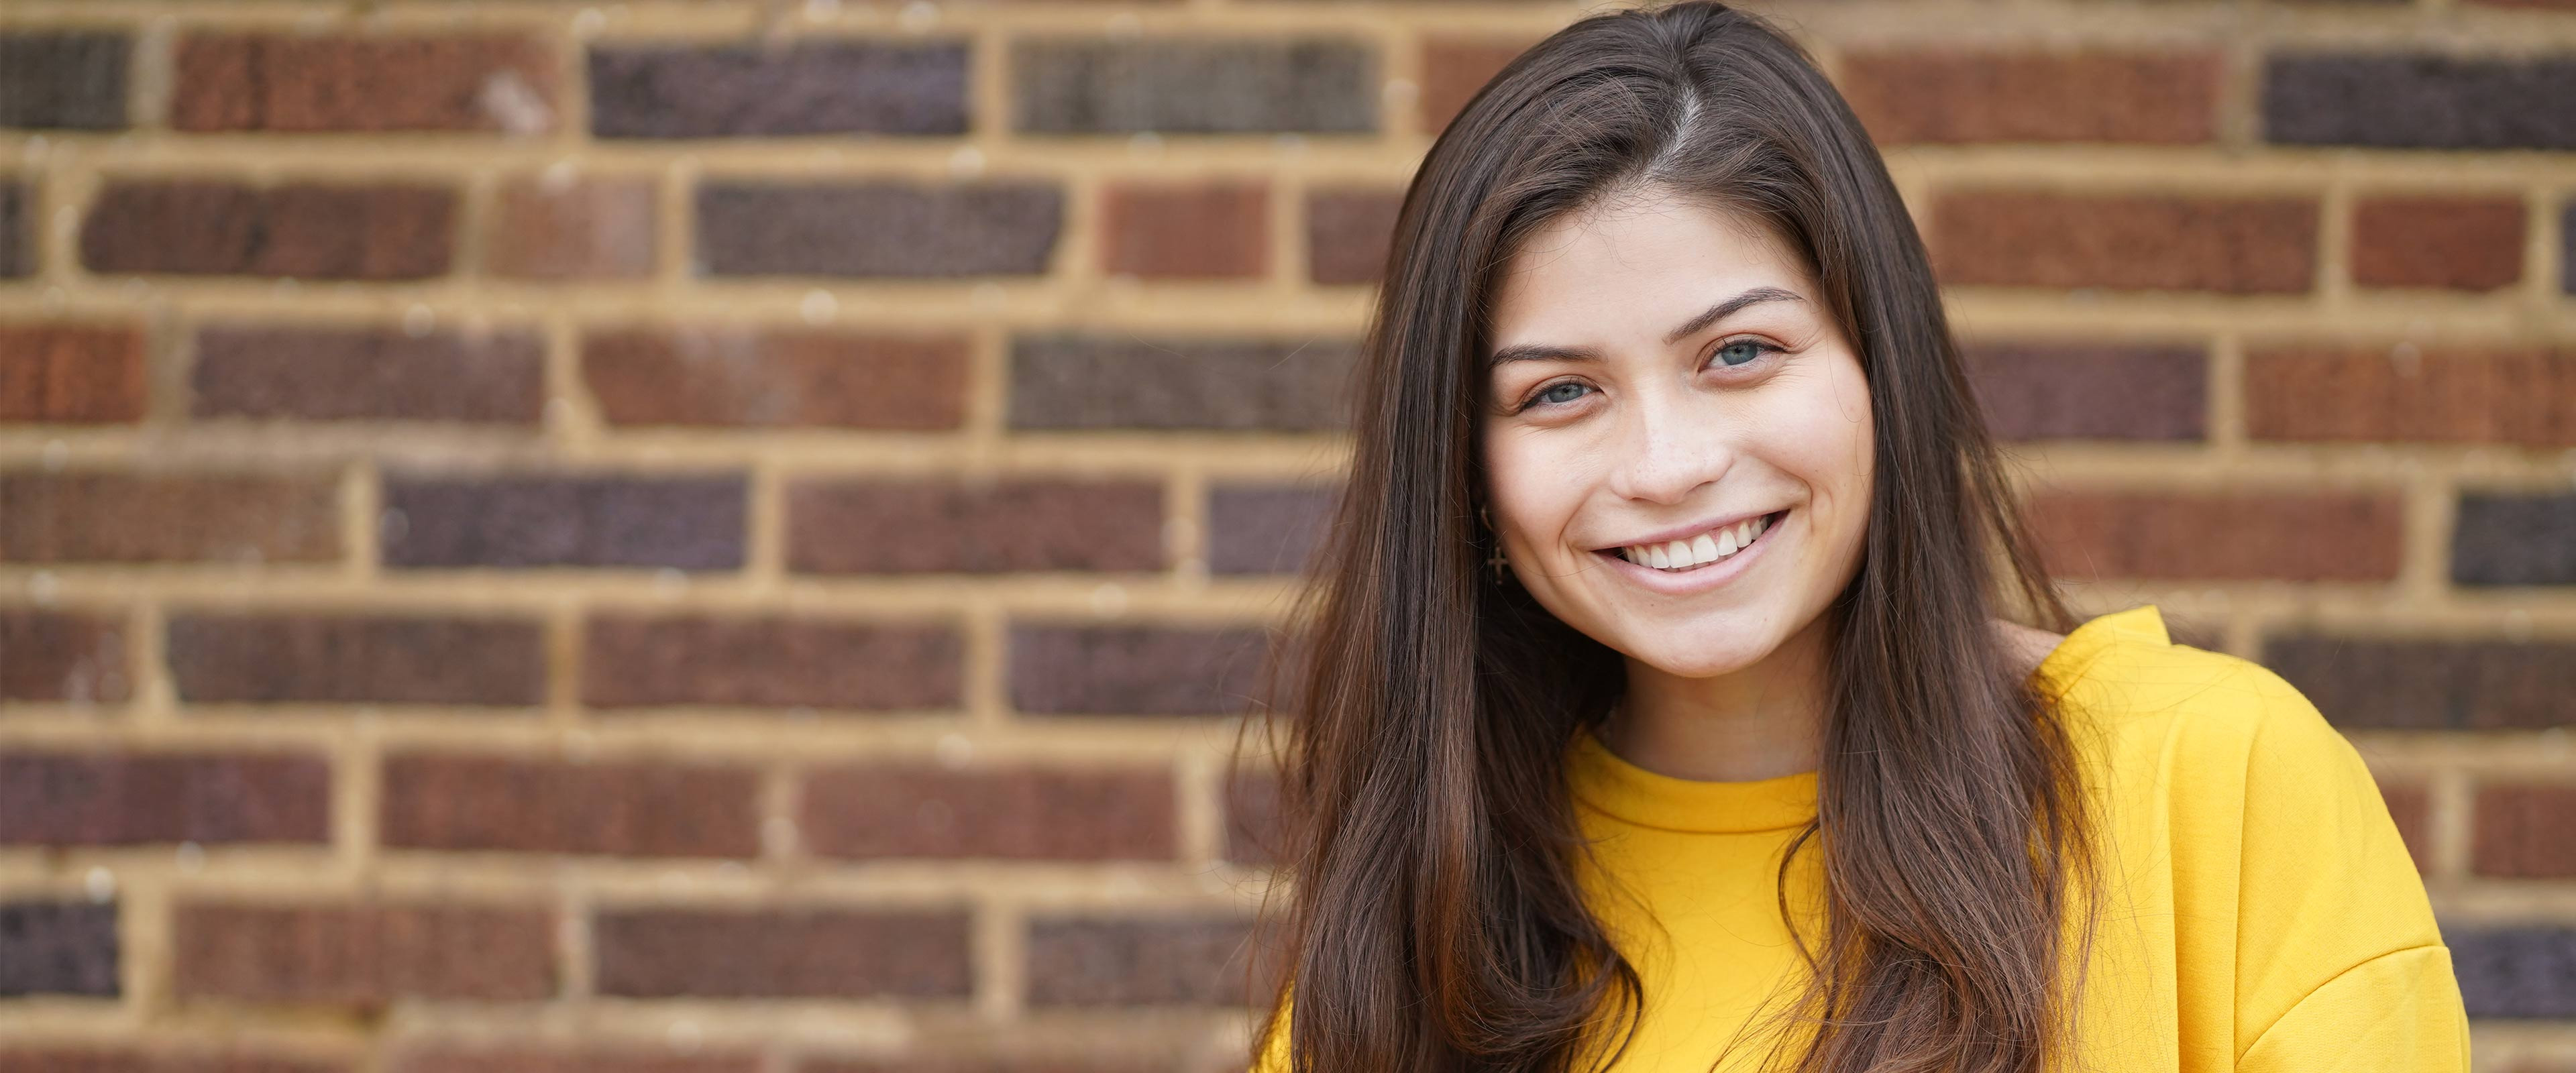 A woman wearing a gold shirt smiles in front of a brick wall.